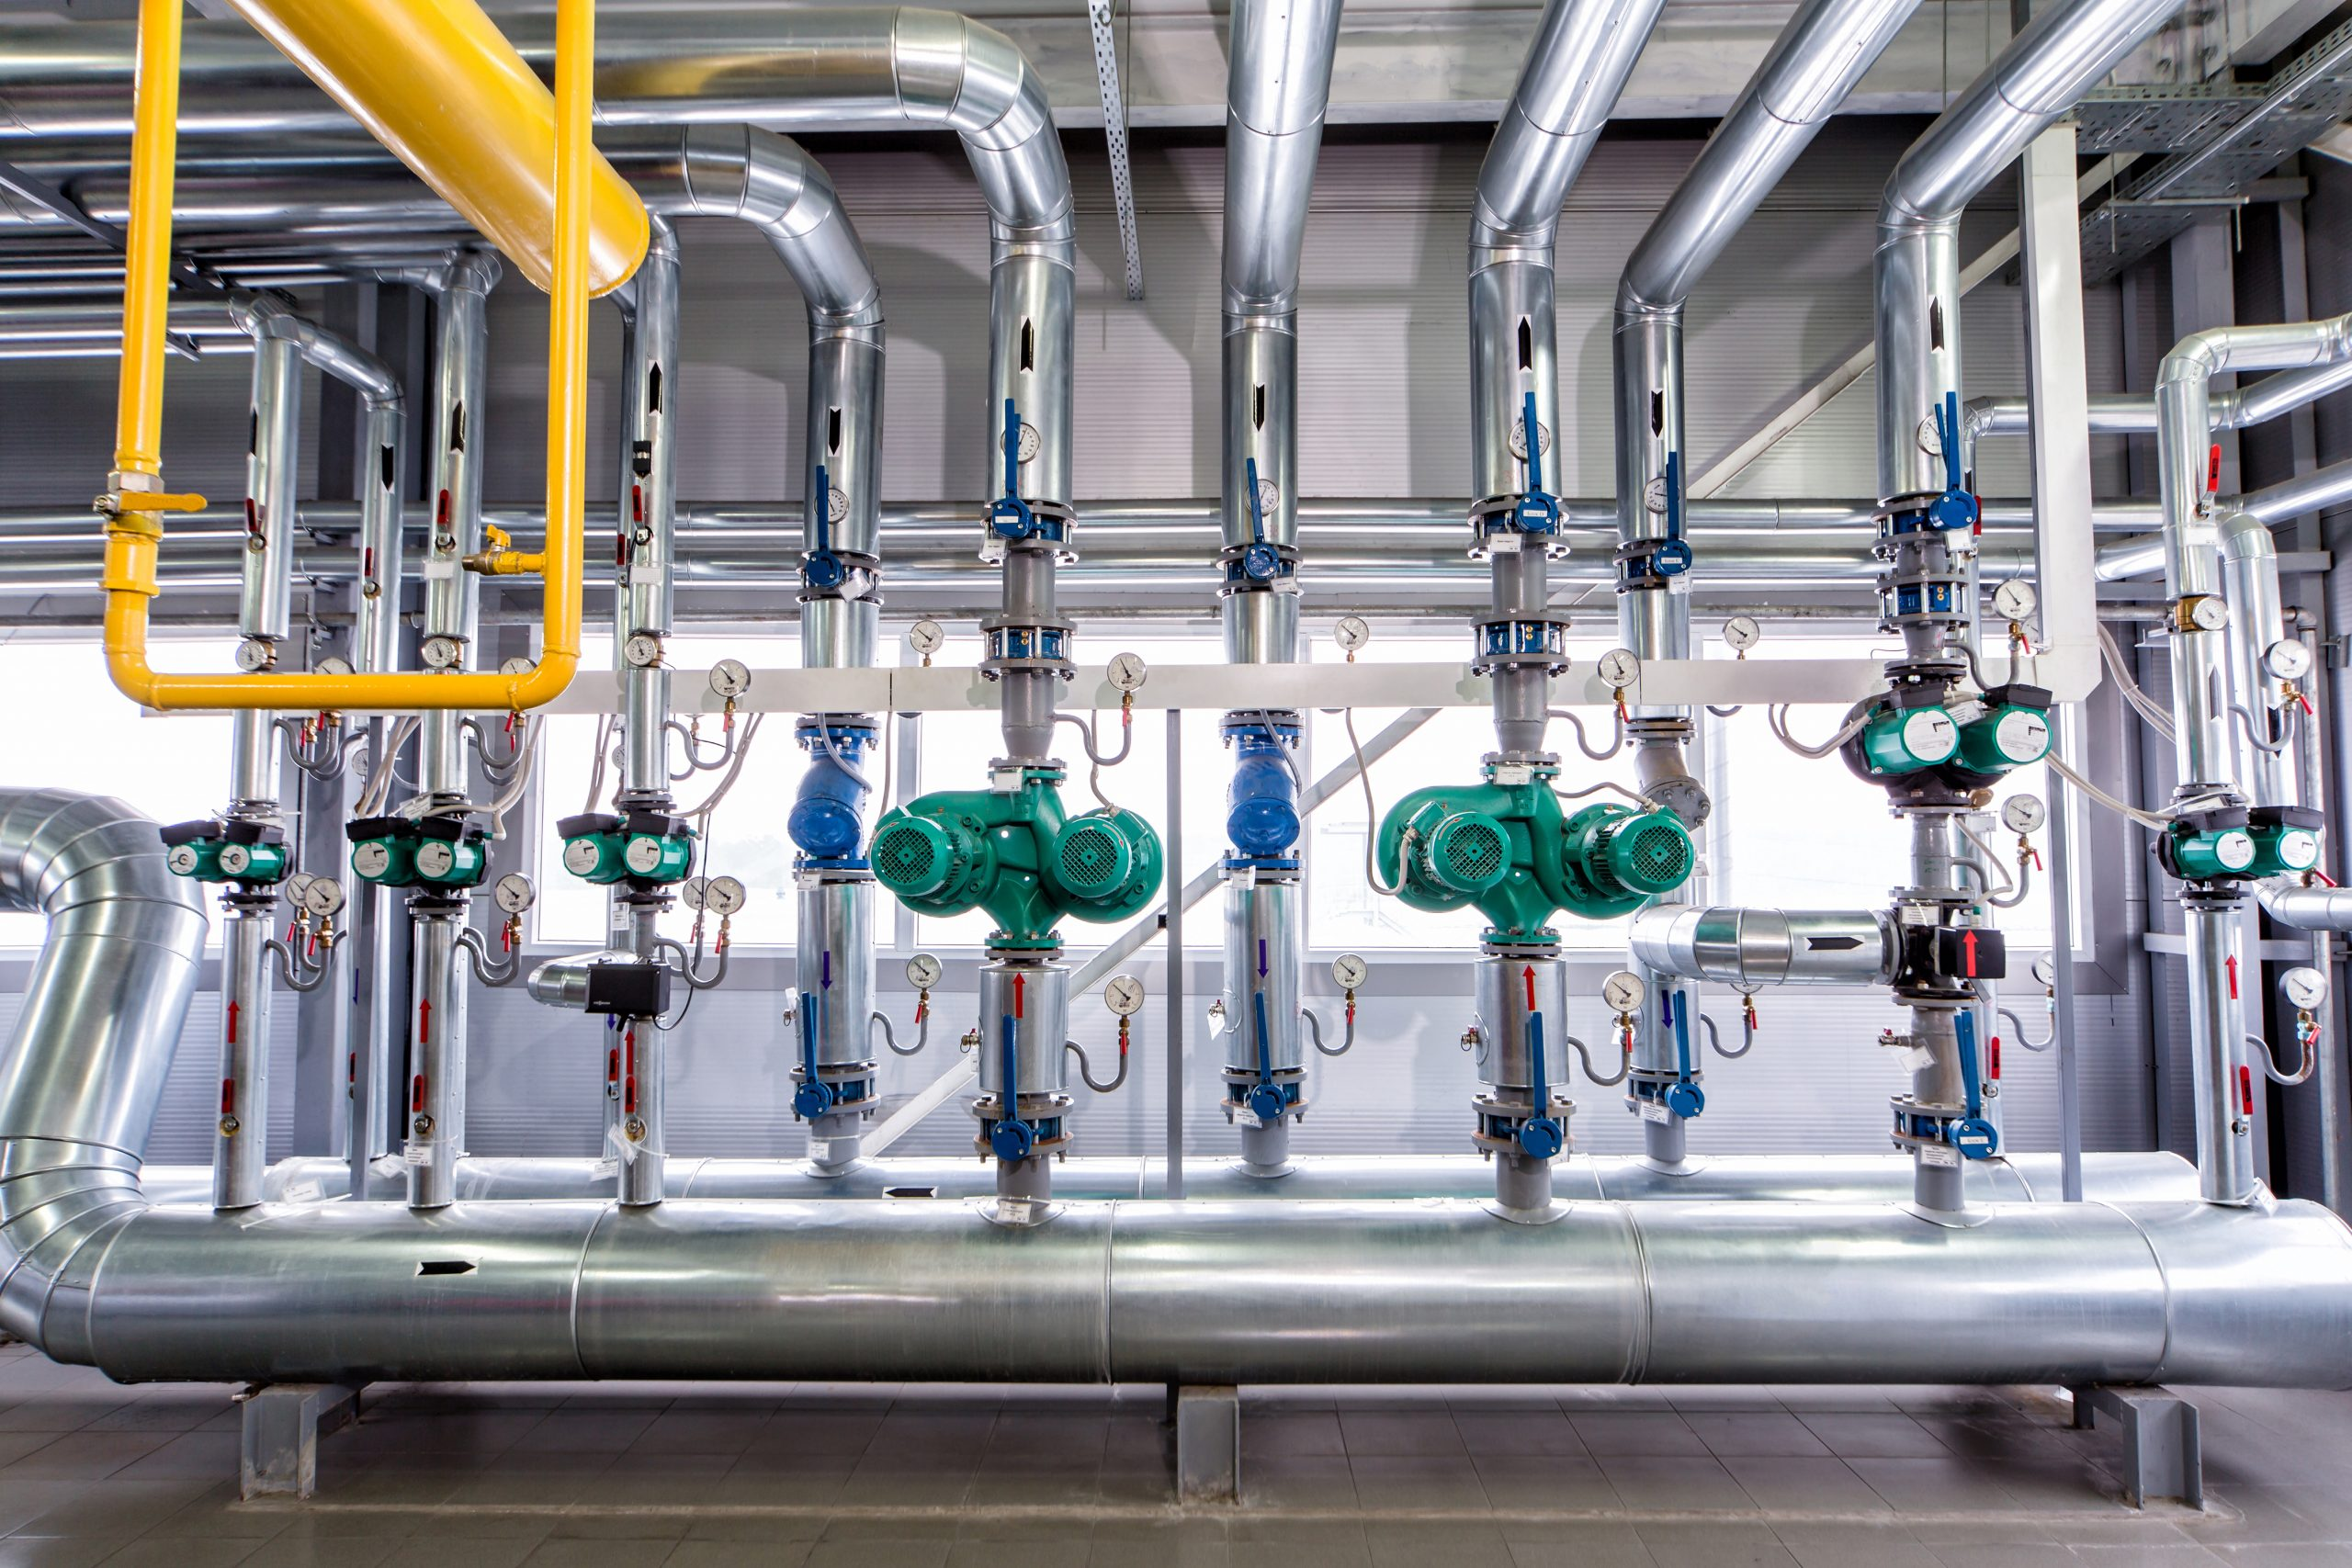 Interior,Of,An,Industrial,Boiler,,The,Piping,,Pumps,And,Motors